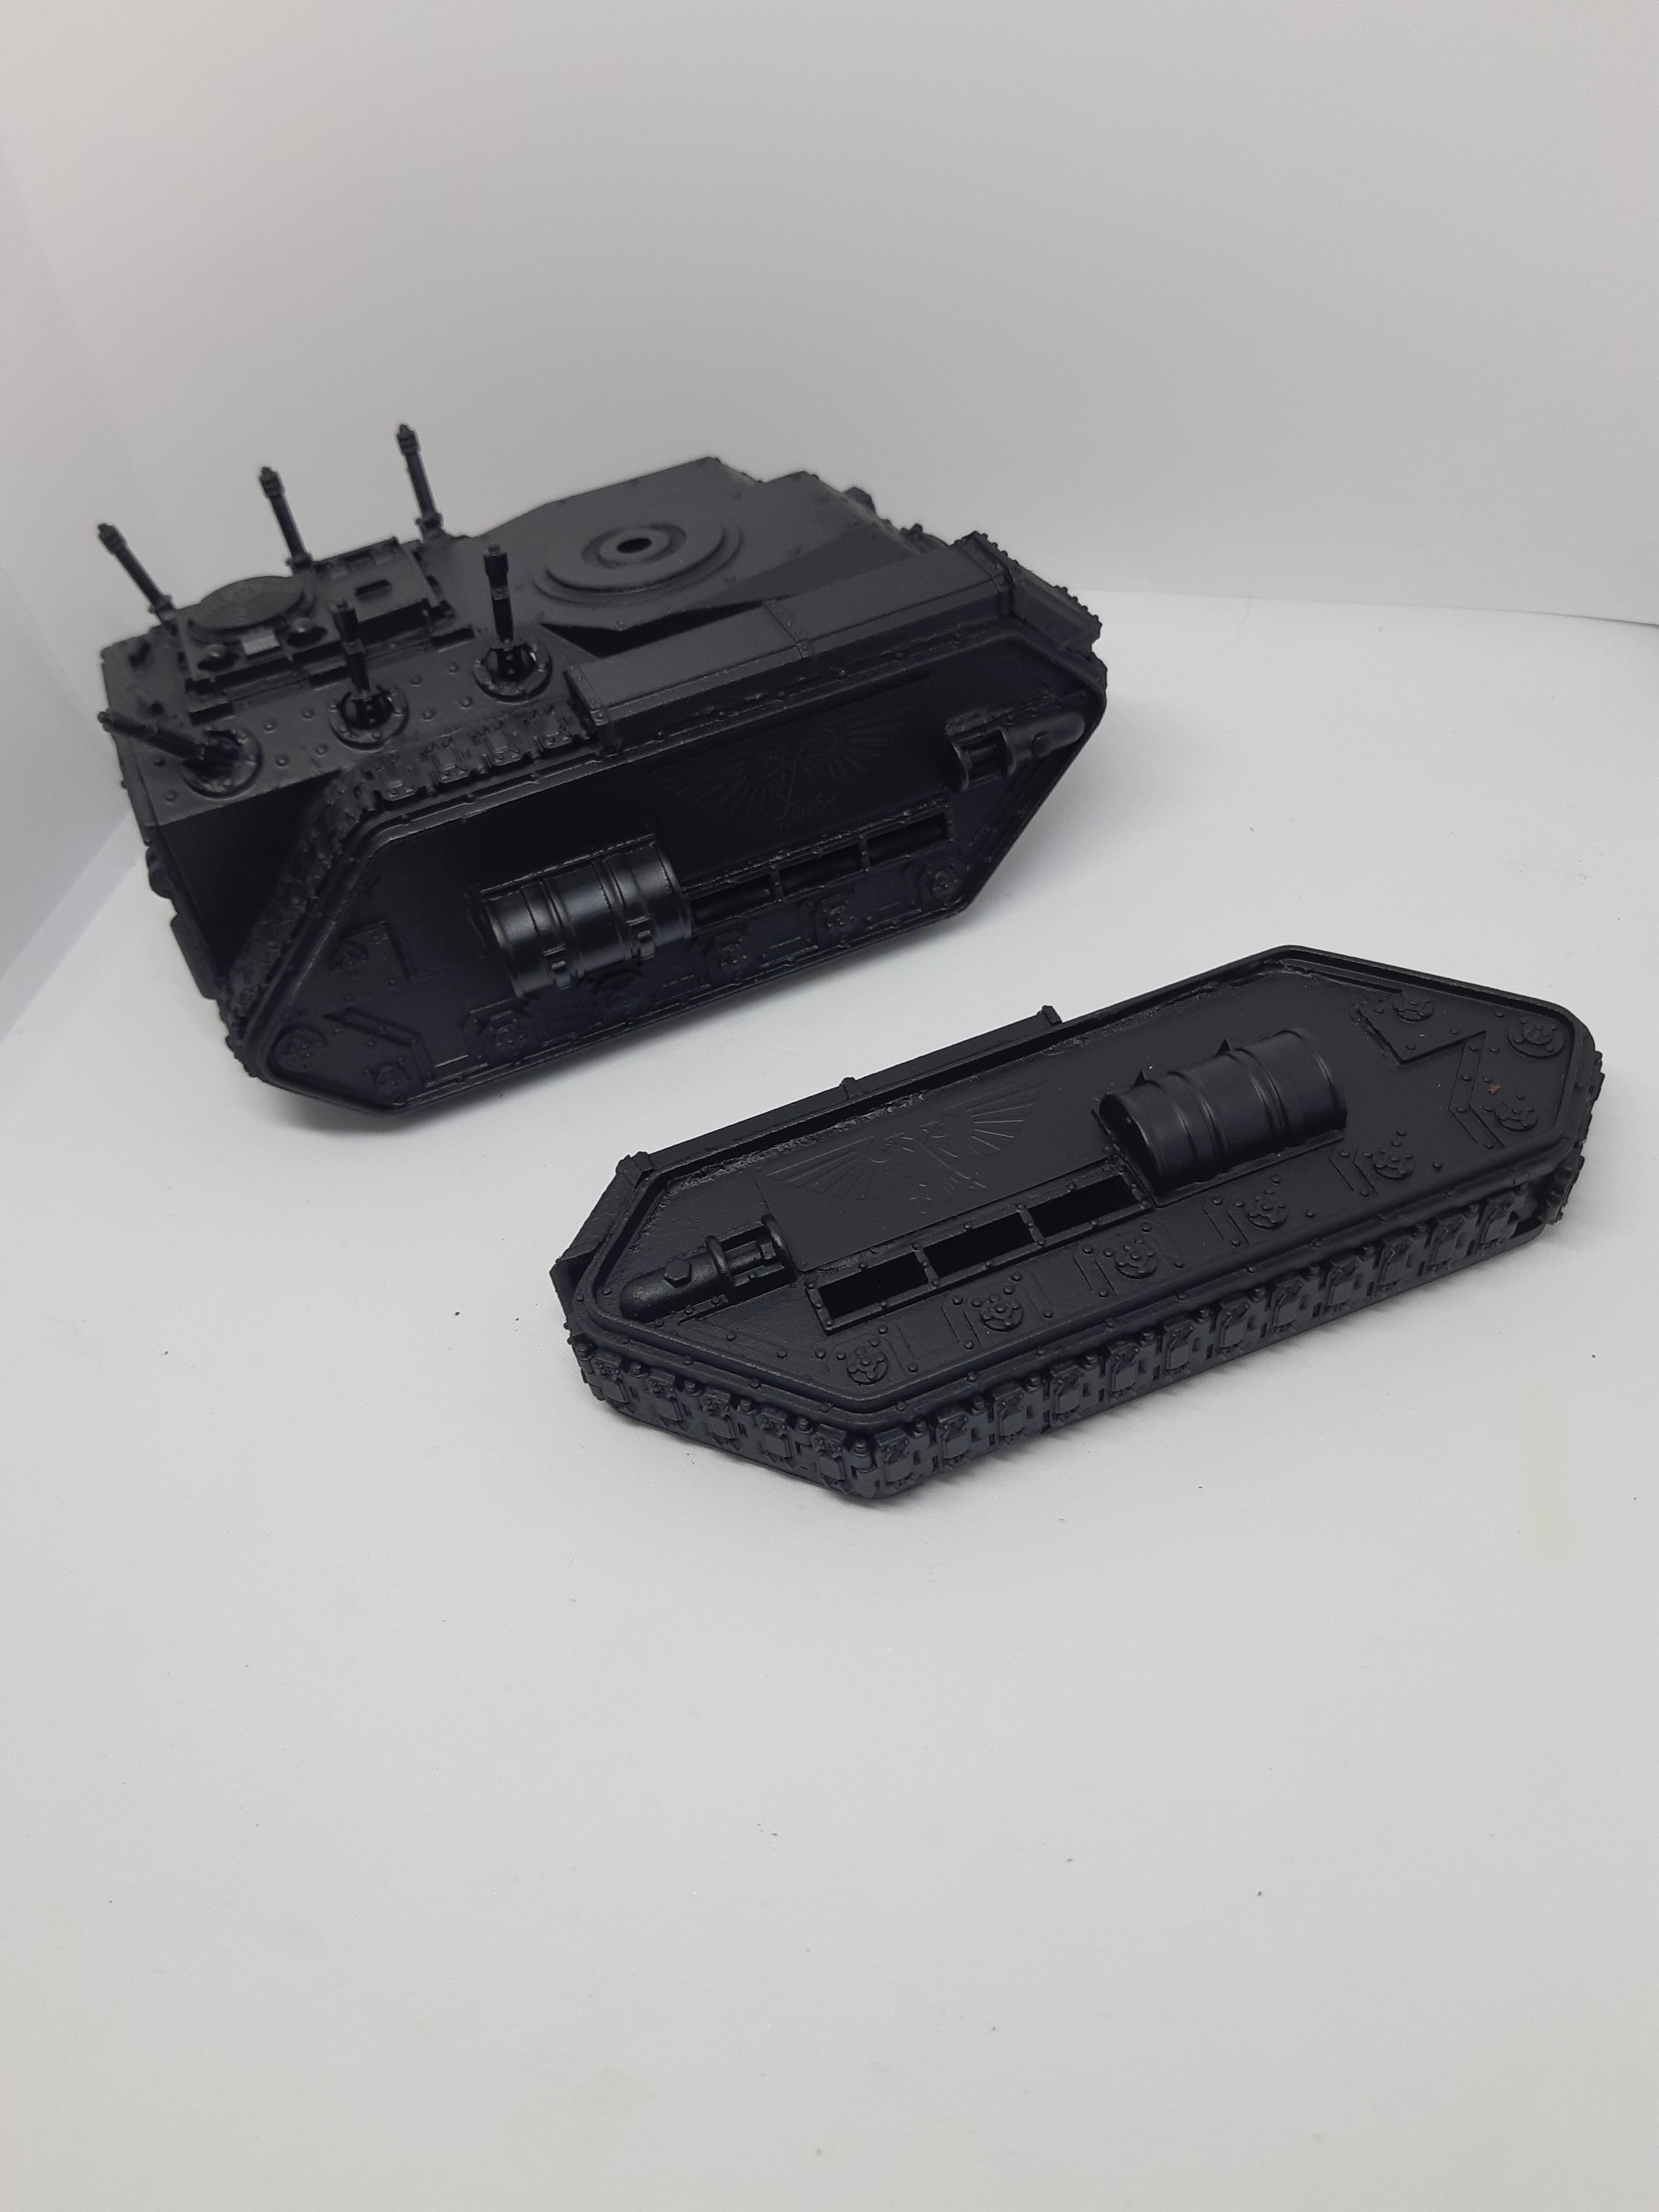 Astra Militarum, Chimera, Etched Brass, Forge World, Imperial Eagles, Imperial Guard, Medium, Warhammer 40,000